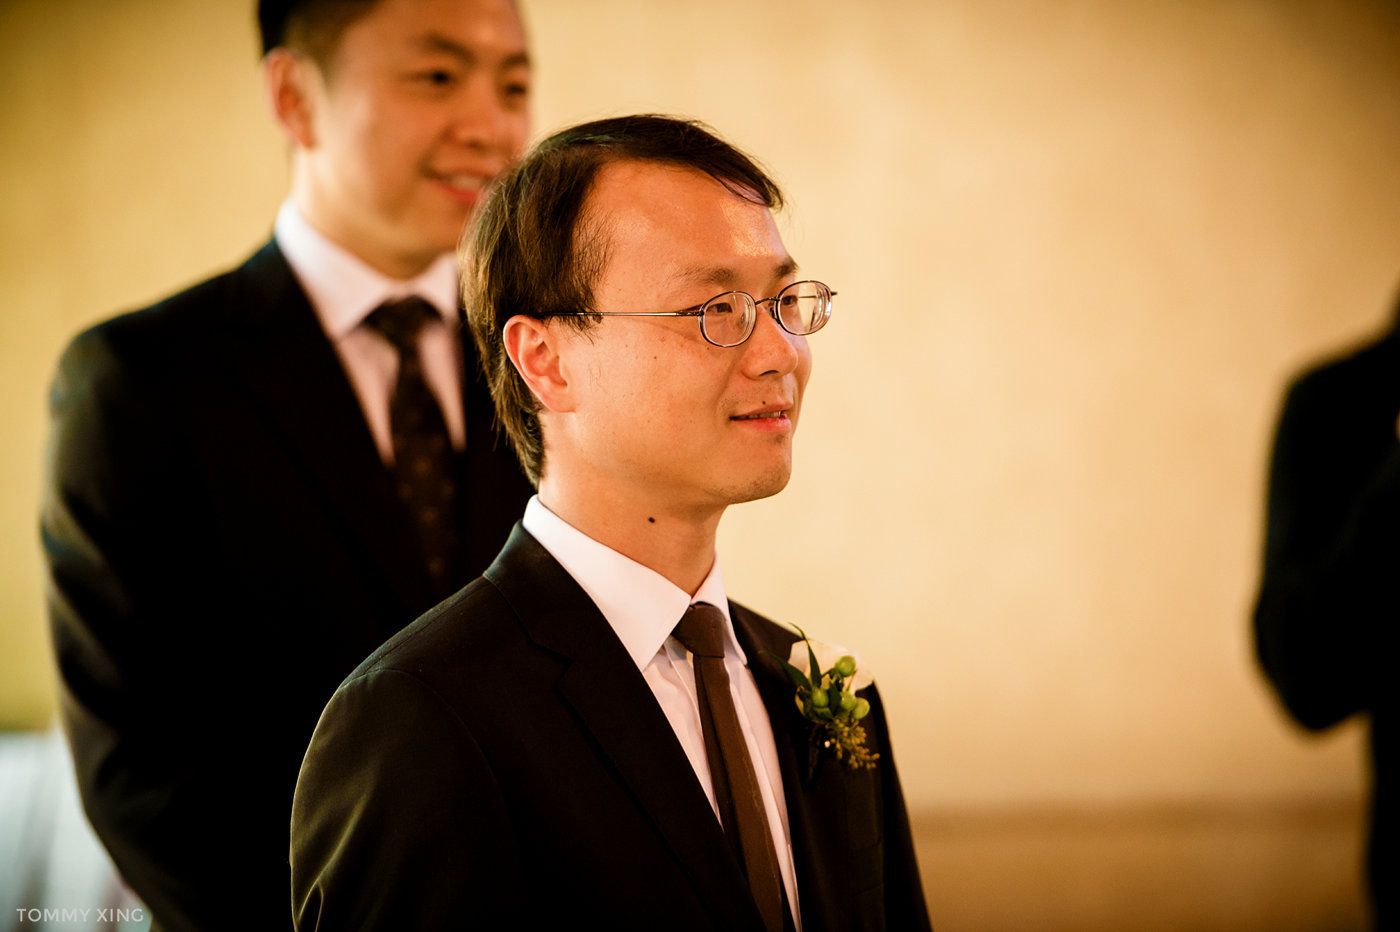 Qinglu Meng & Daozheng Chen Wedding Slideshow-112-E.JPG